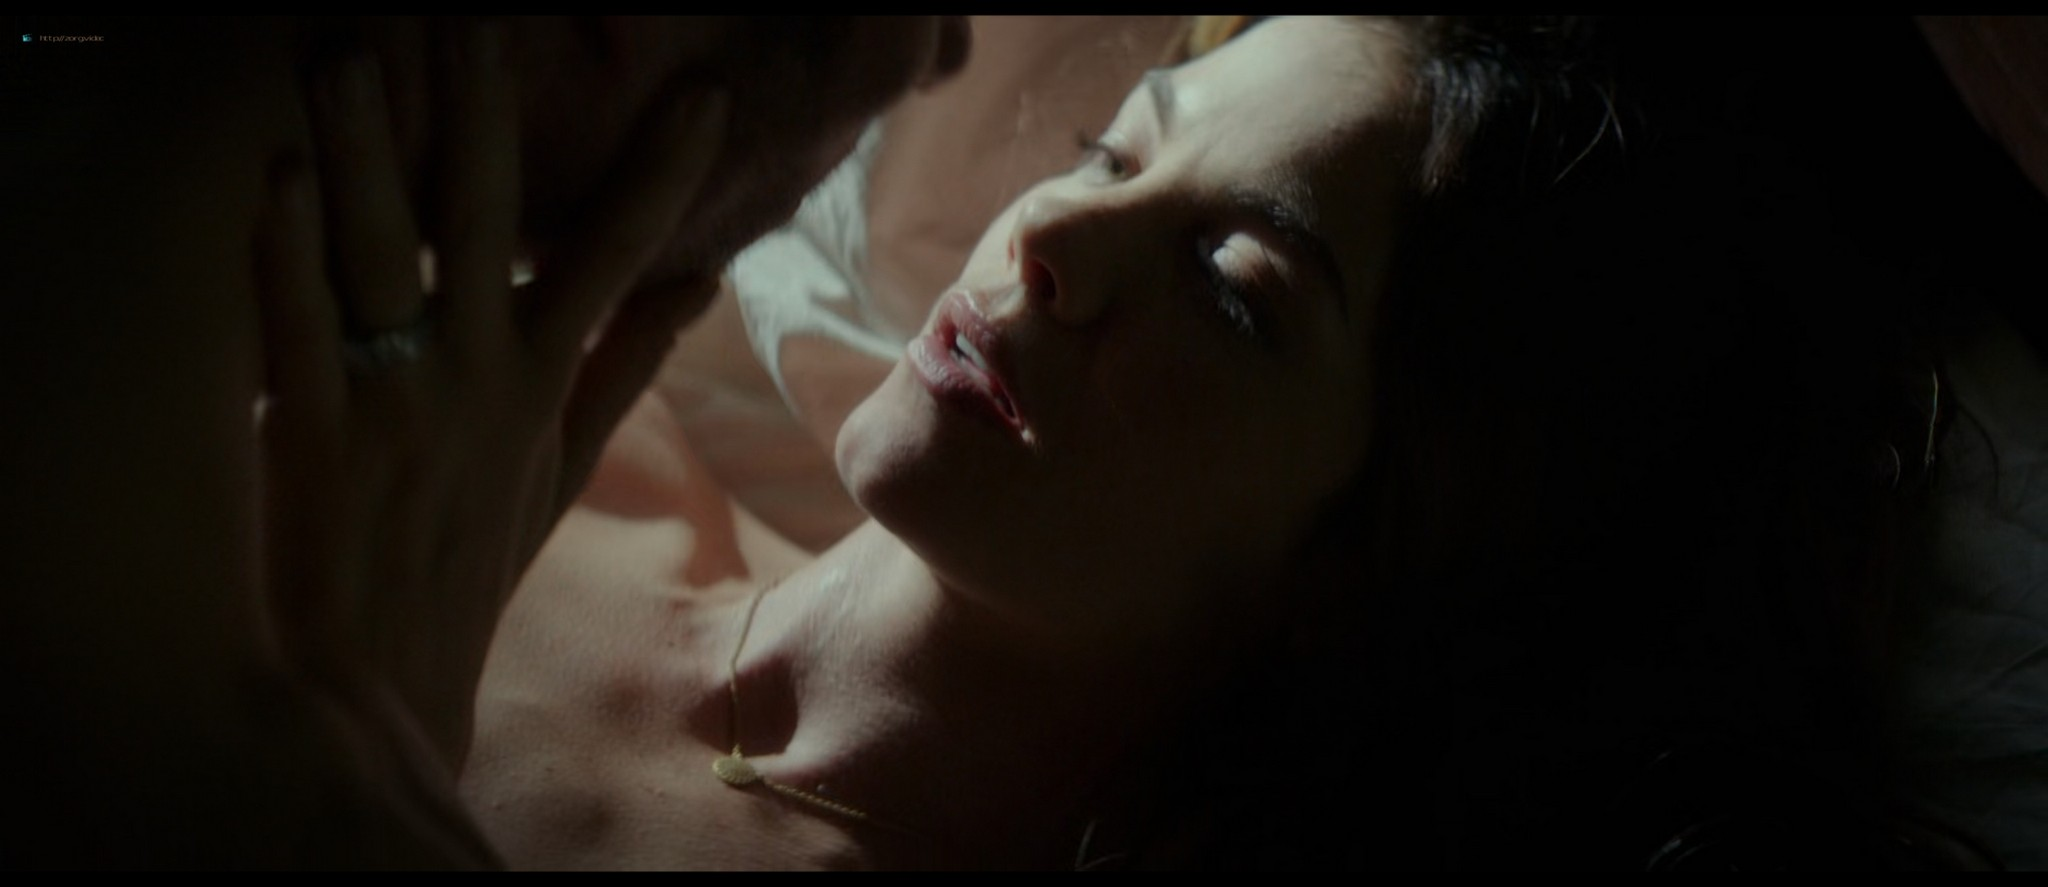 Michelle Monaghan hot see-through and Liana Liberato hot mild sex - The Best of Me (2014) HD 1080p BluRay (6)